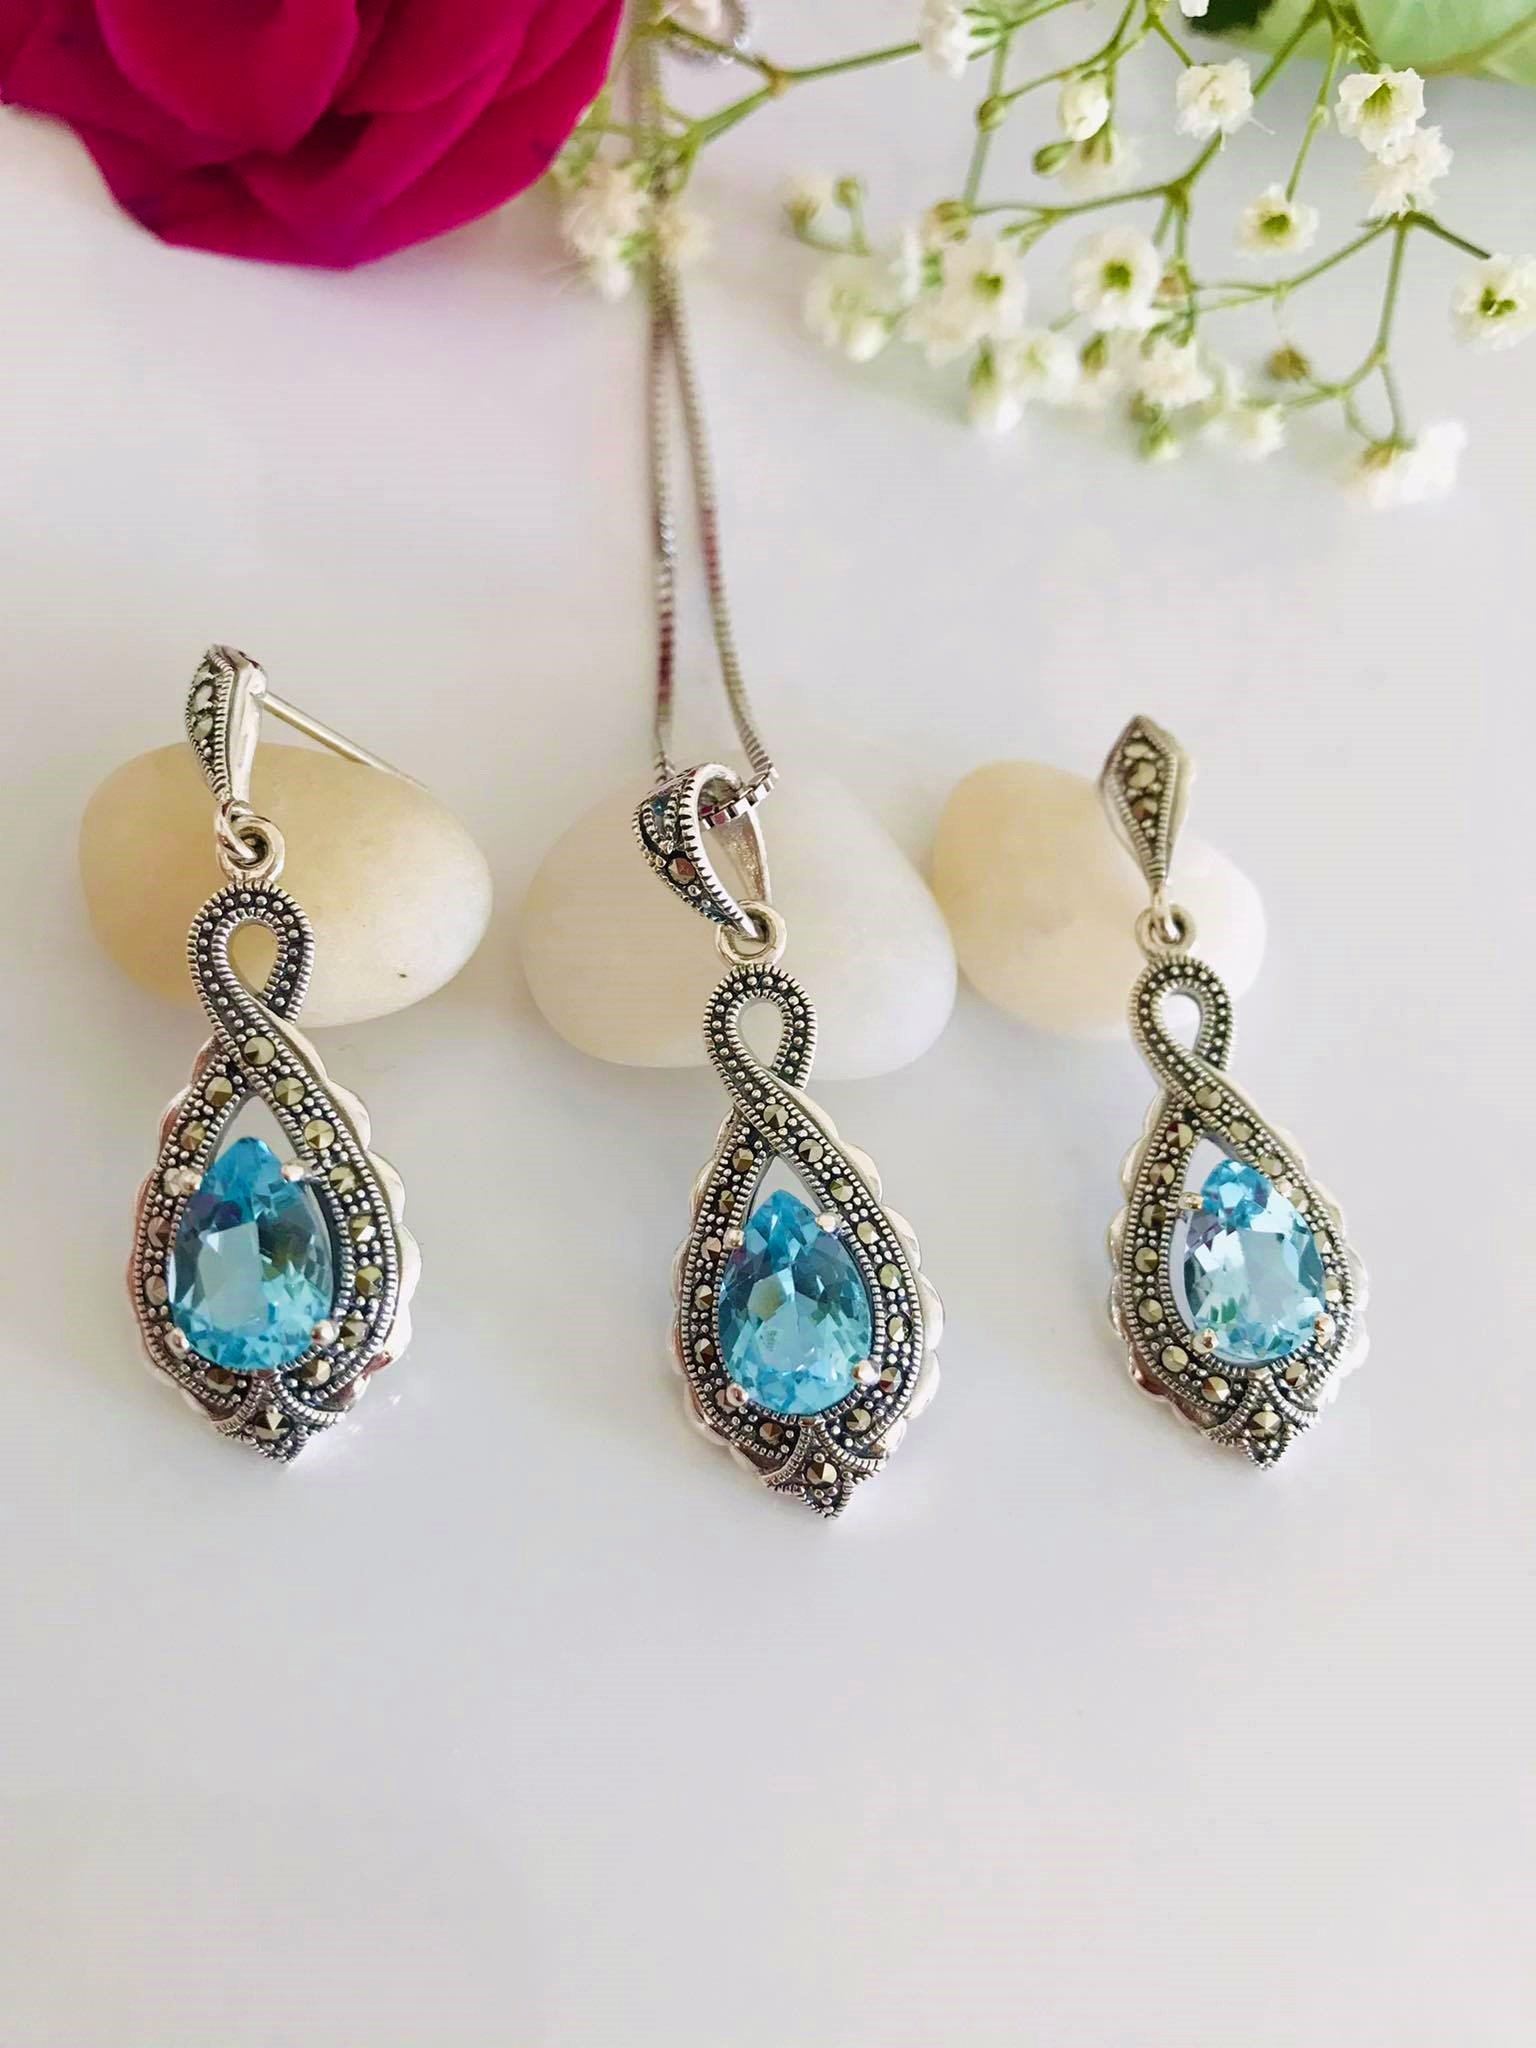 Timeless Infinity Sky Blue Topaz and Sparkling Marcasite Sterling Silver Earrings and Necklace Set  Image